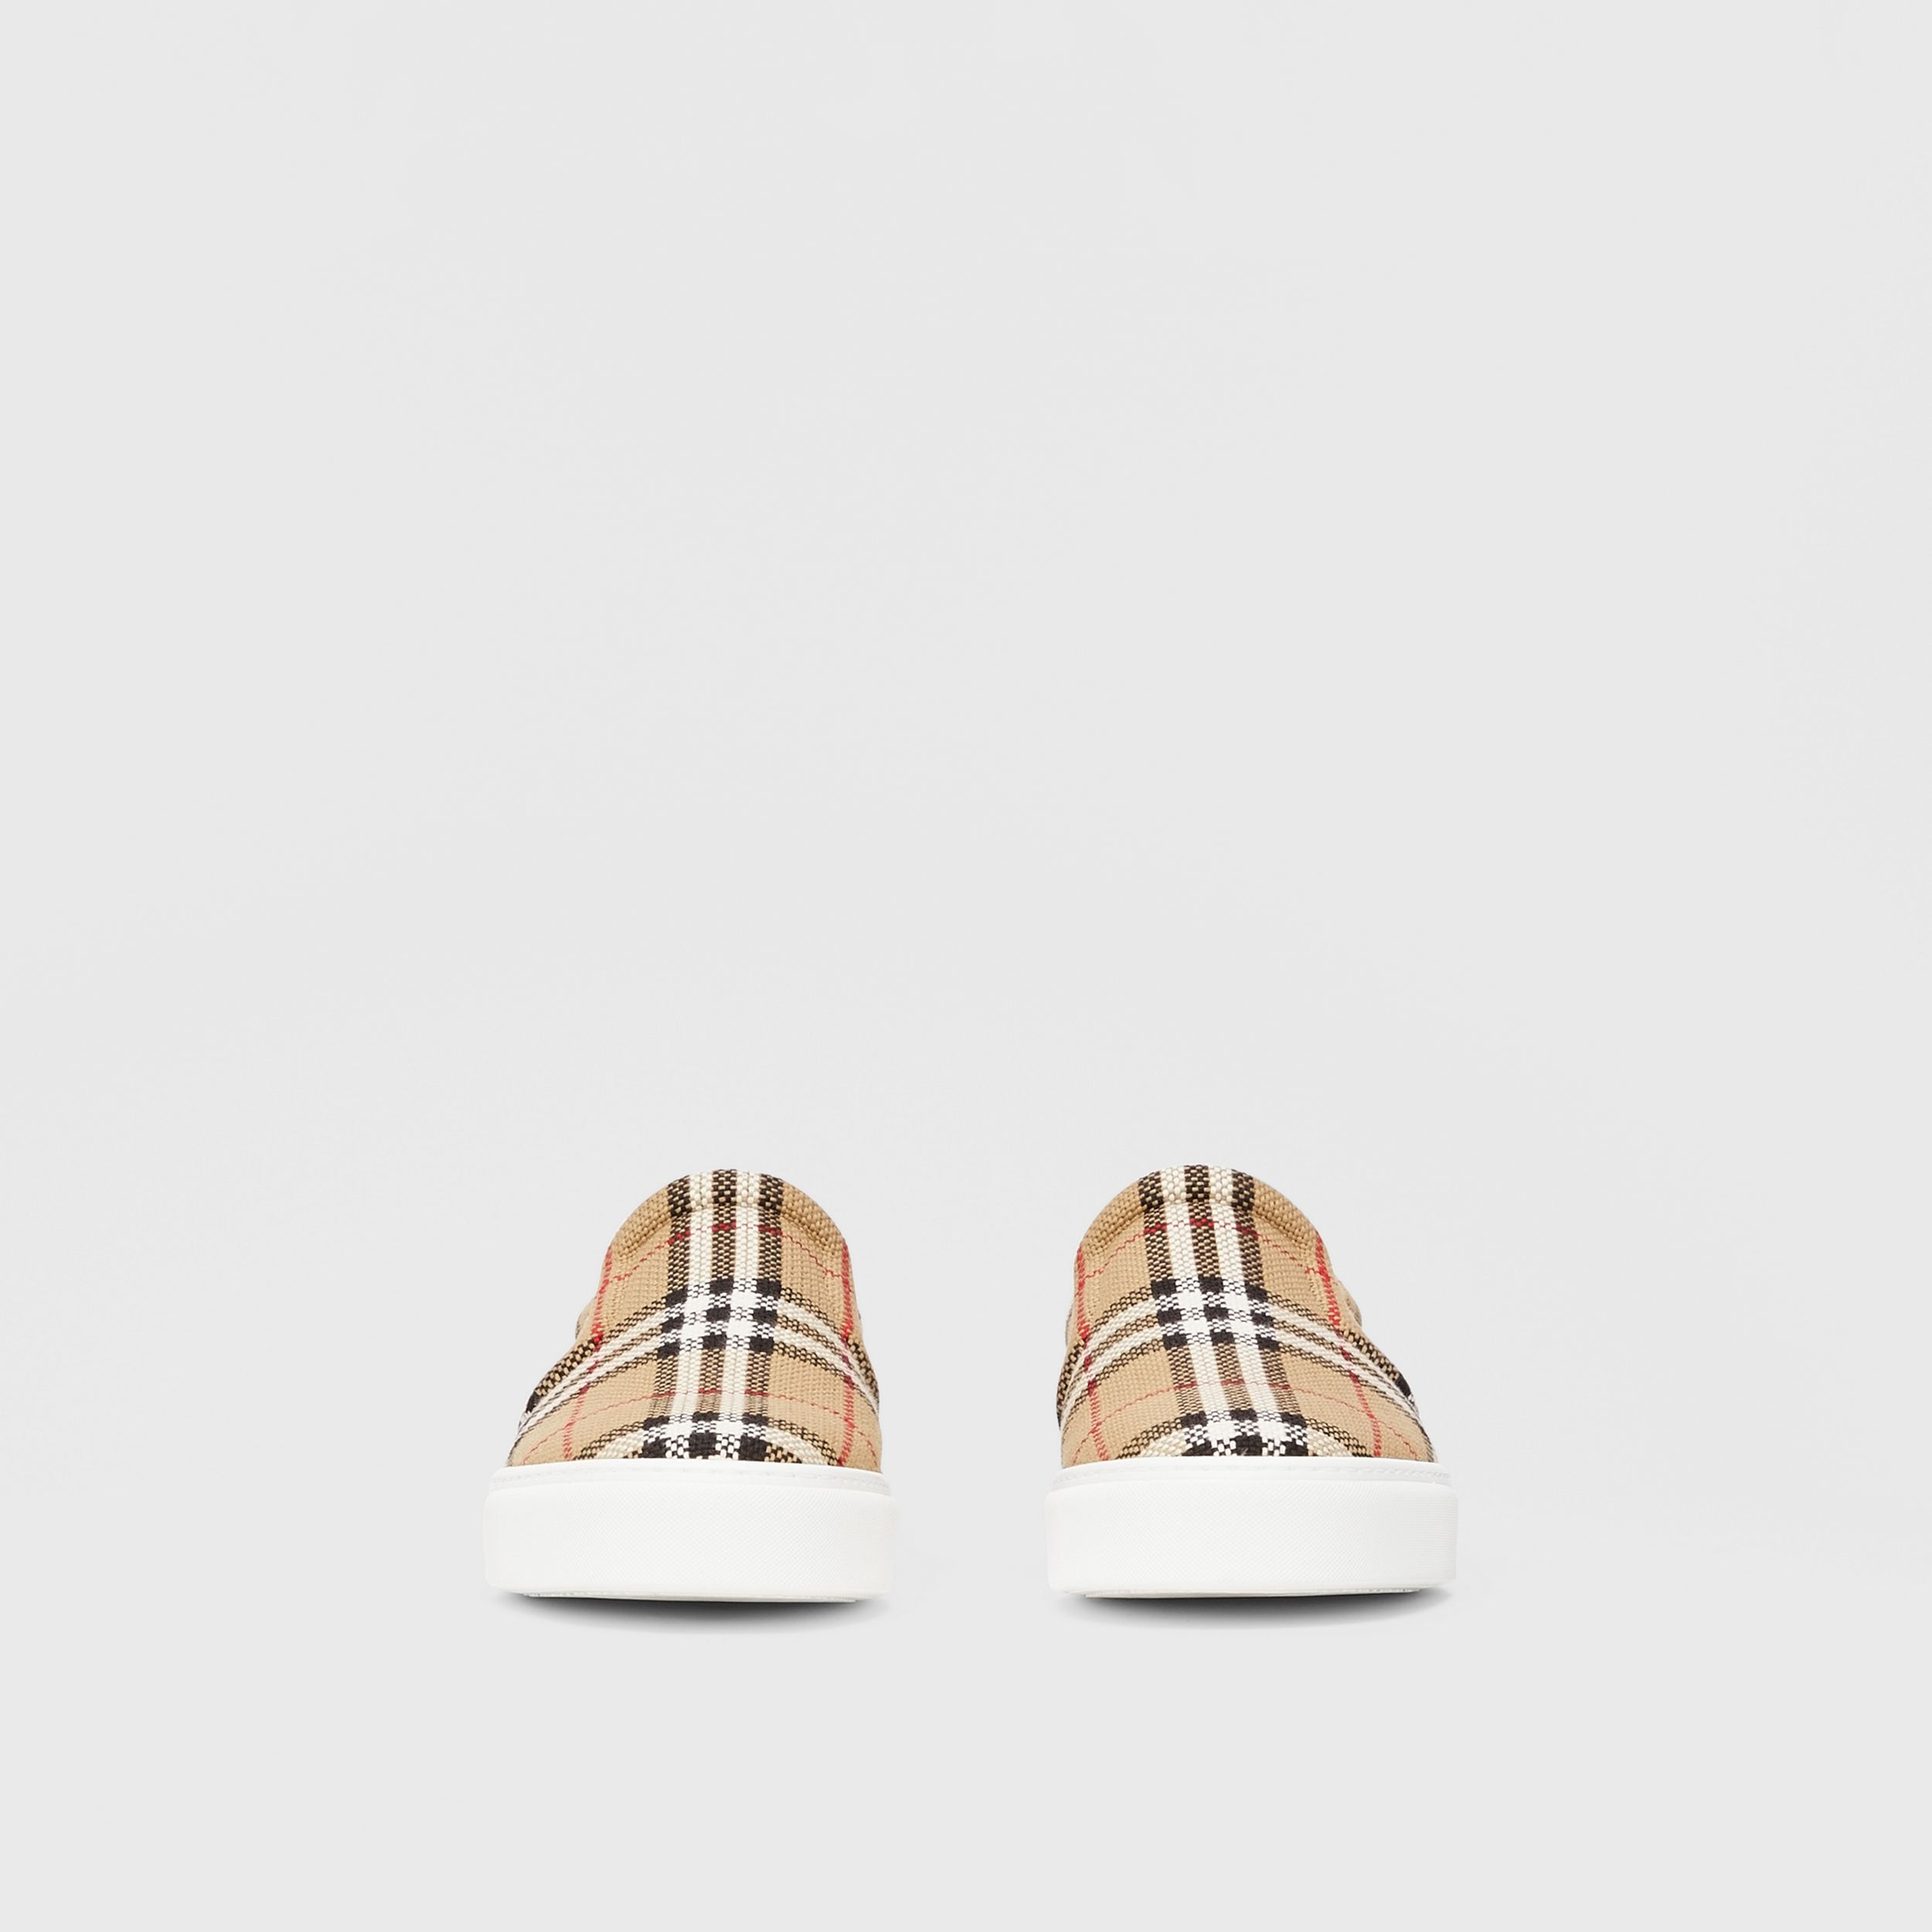 Bio-based Sole Latticed Cotton Slip-on Sneakers in Archive Beige - Men | Burberry United Kingdom - 4